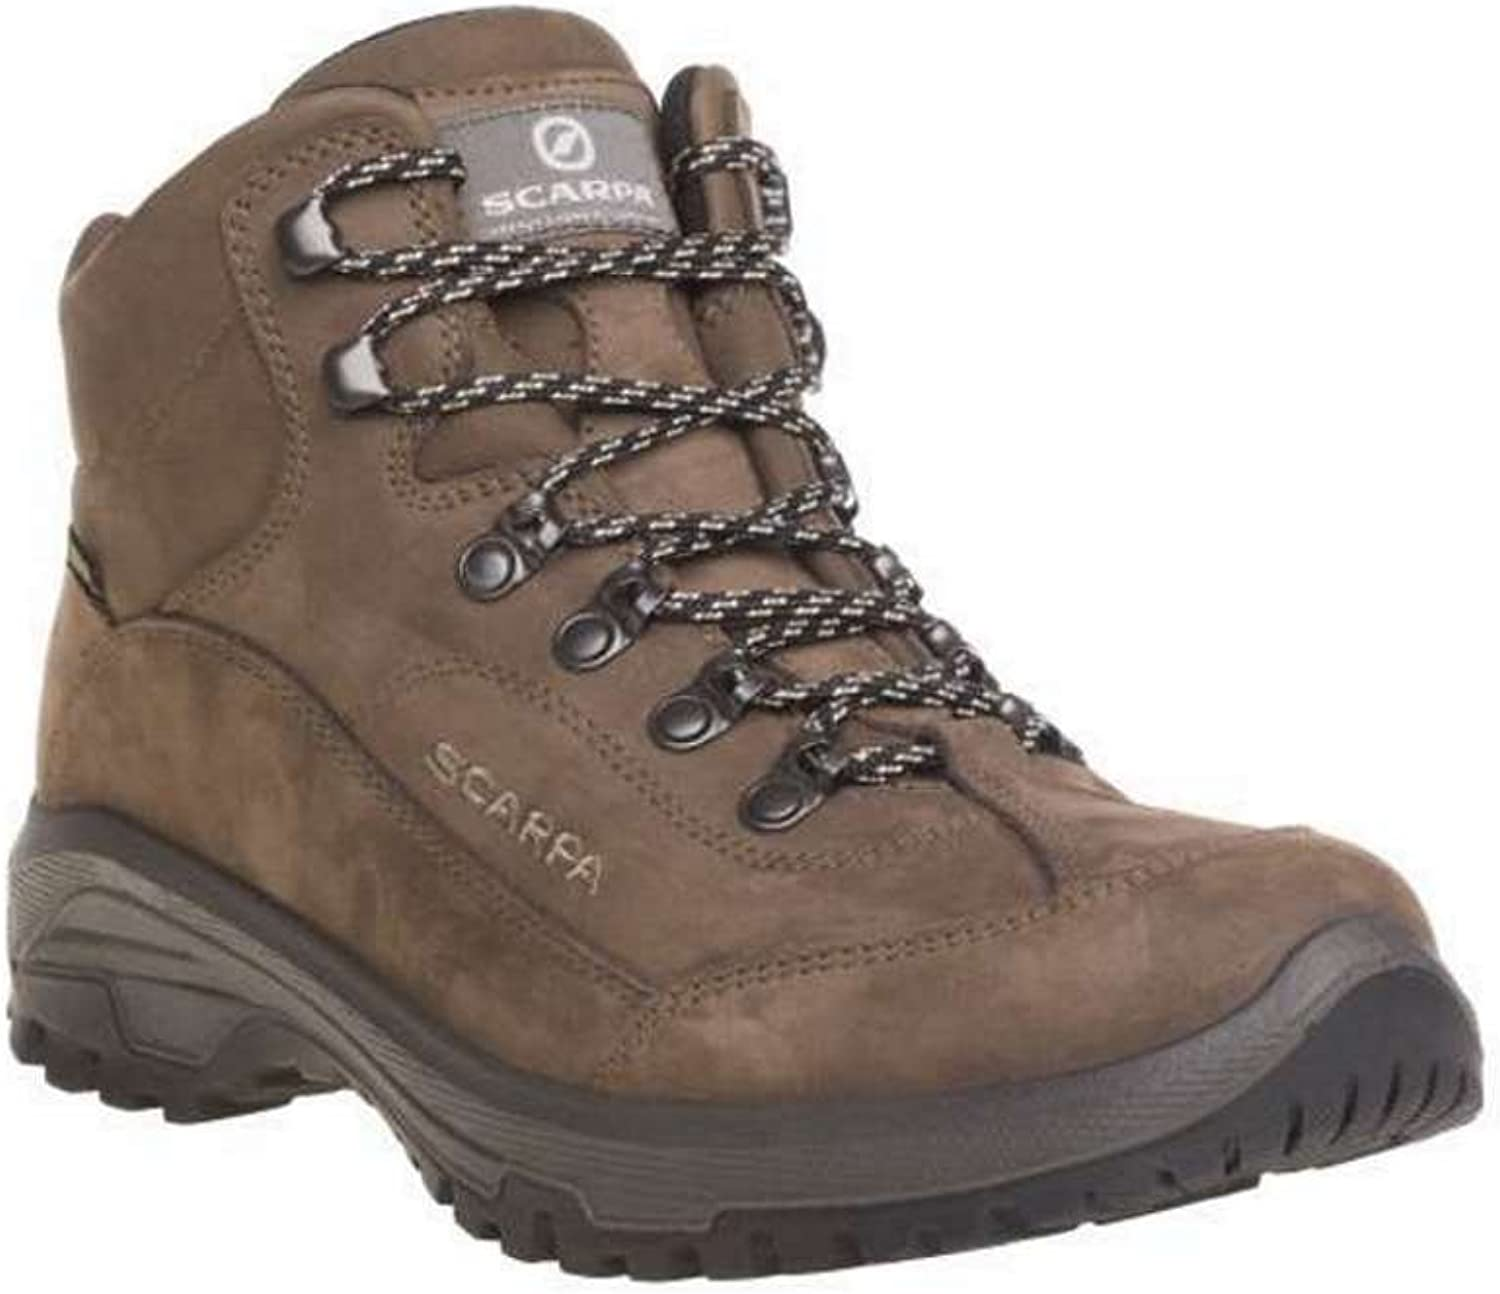 Scarpa Cyrus Gore-TEX Women's Mid Hiking Boots - SS19